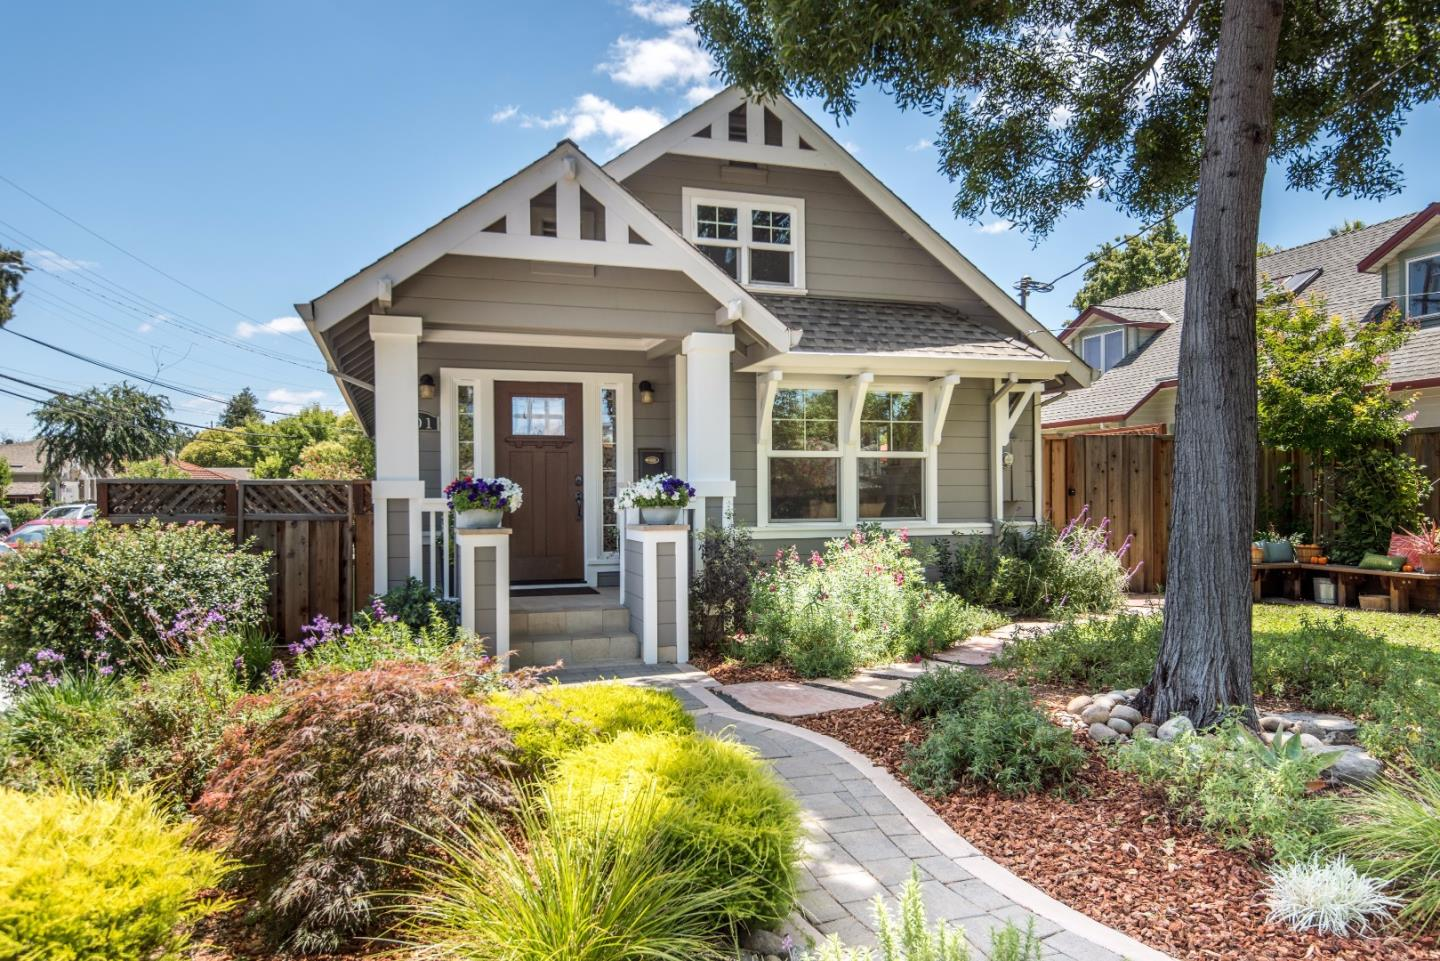 Additional photo for property listing at 201 Chestnut Avenue  Palo Alto, California 94306 United States